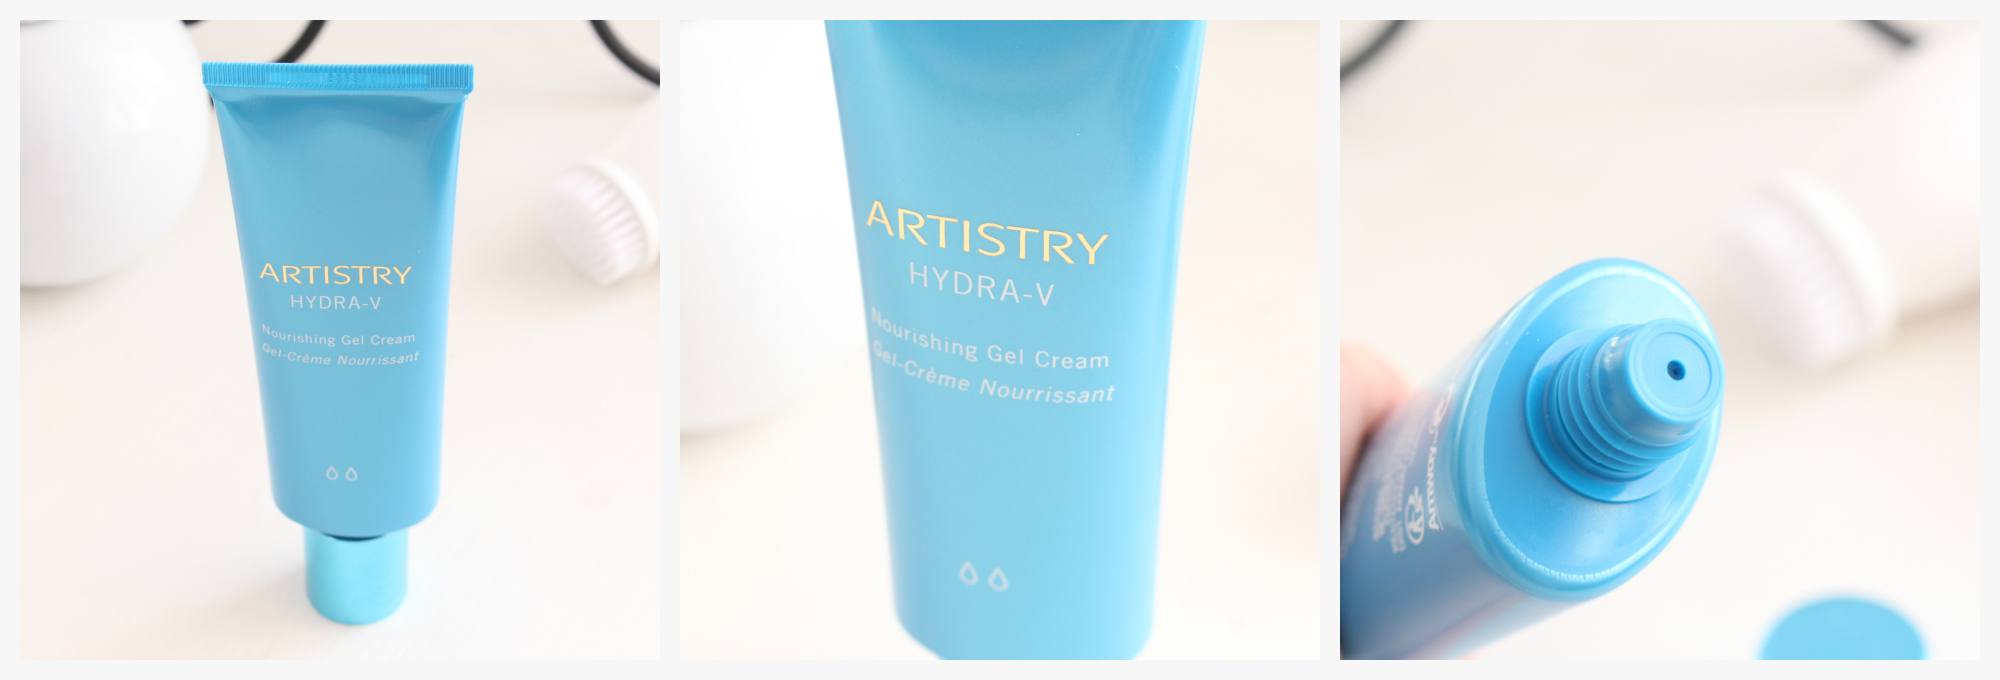 Artistry Hydra-V Nourishing Gel Cream_3